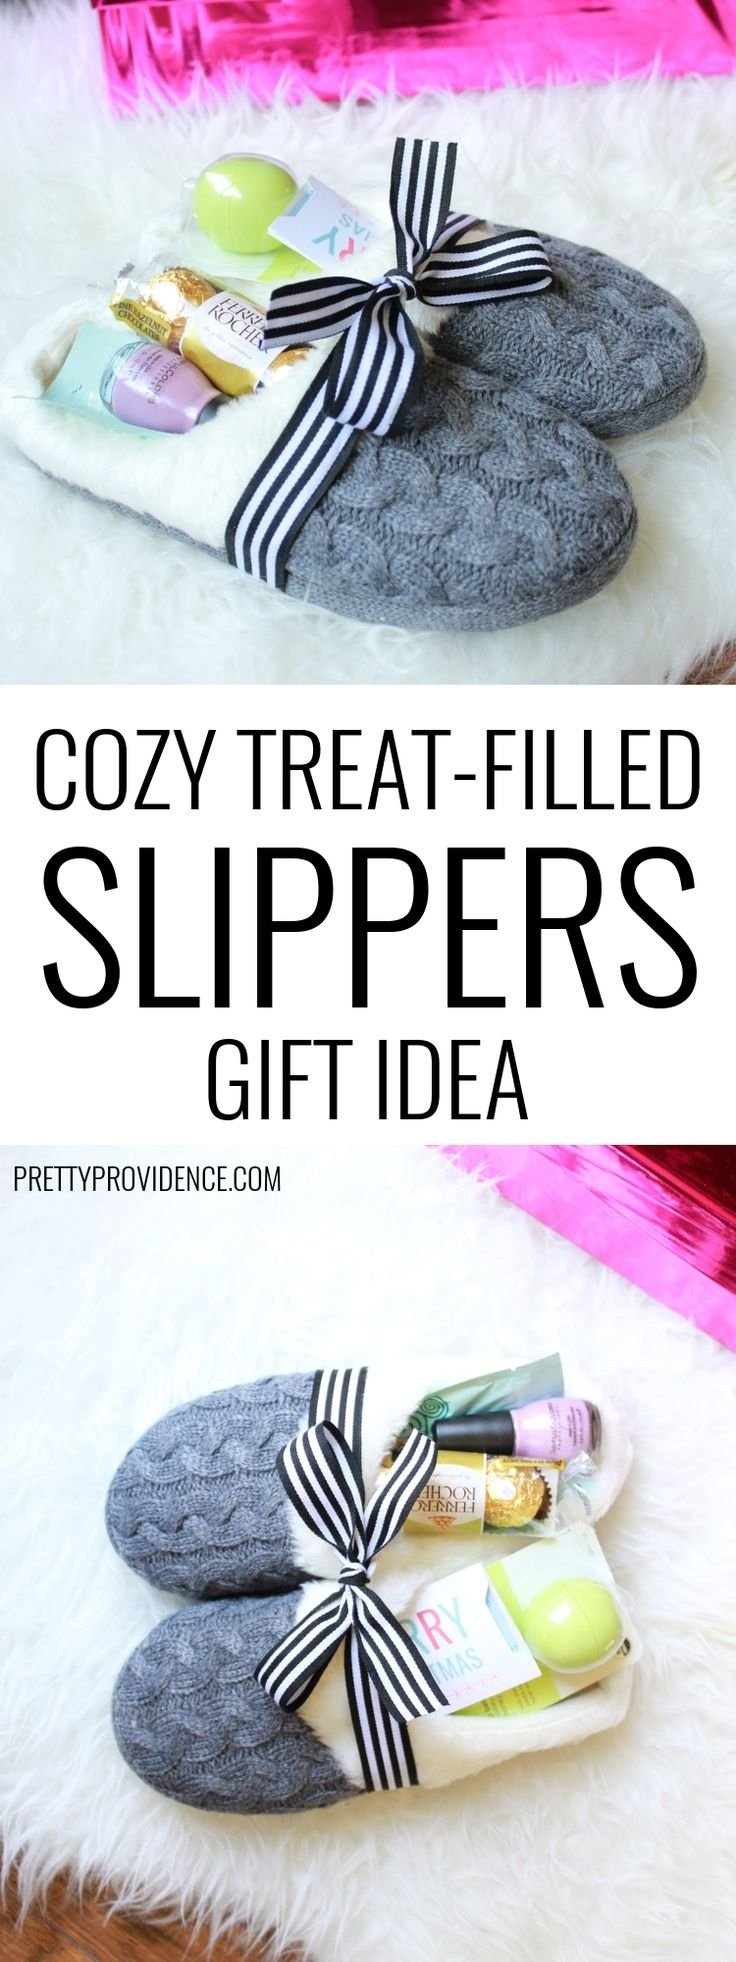 109 best diy gifts images on pinterest   gift ideas, original gifts